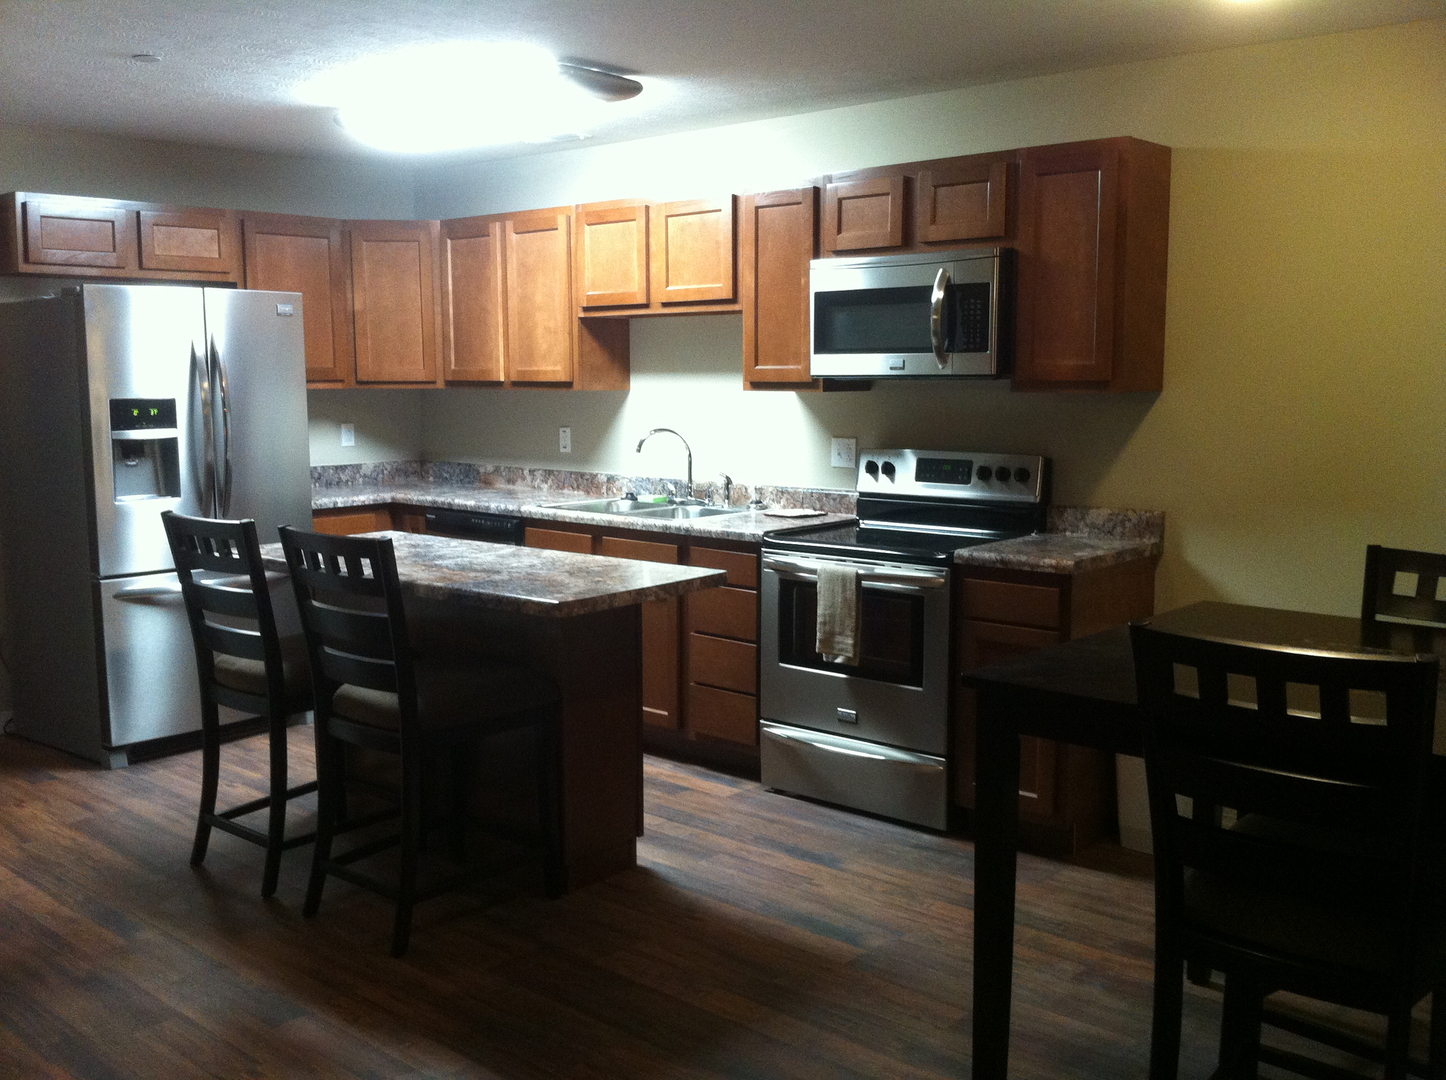 Huntington  WV 25703 1 100 sqft   2 bedrooms with 2 1 2 bathrooms   W D  included   off street parking. Campus Edge Apartment Rentals